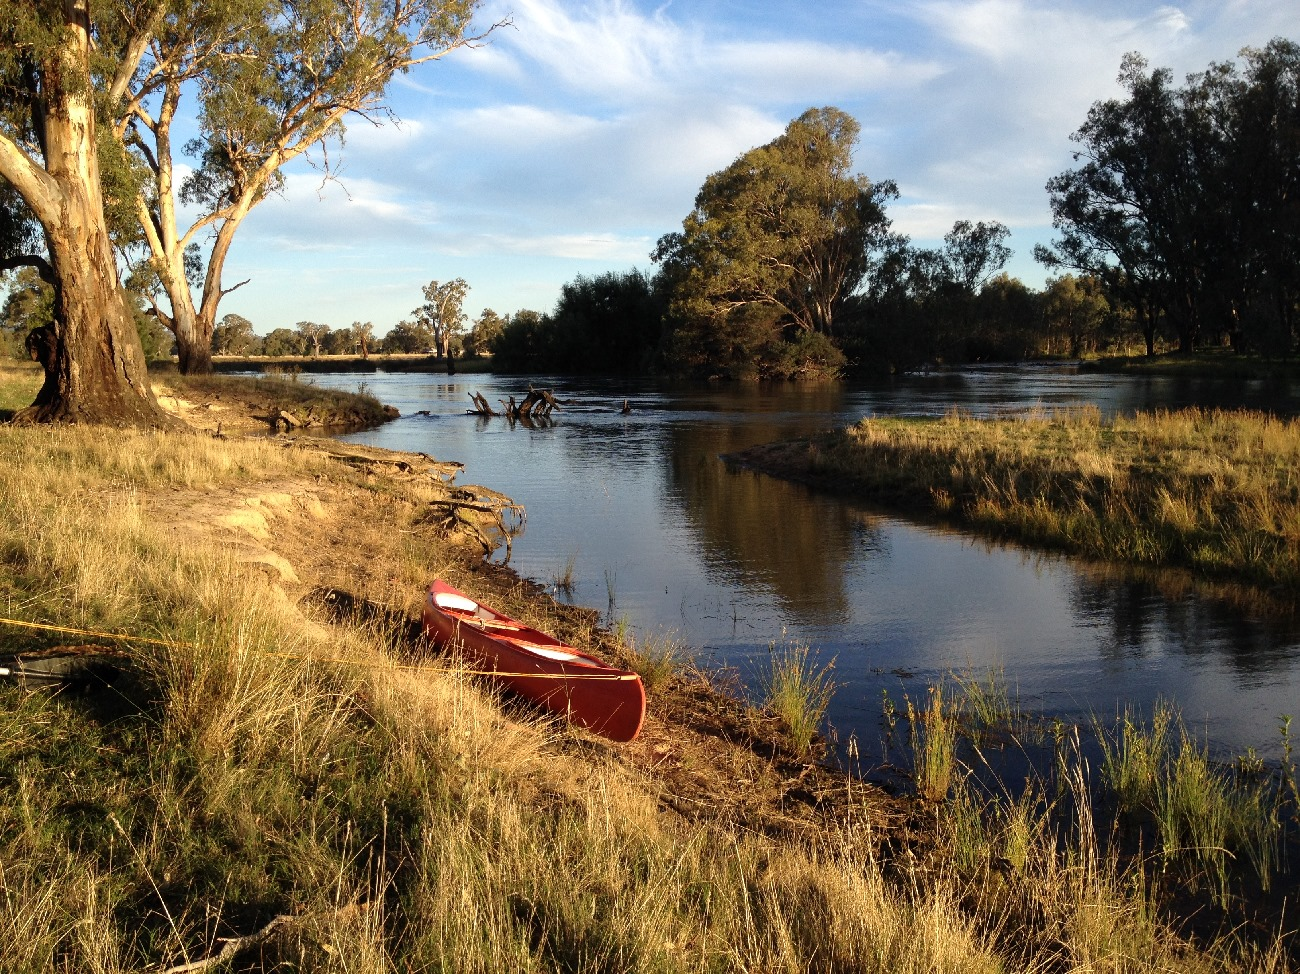 Grassy banks provide easy landings for canoeists, Dights Creek off the Murray